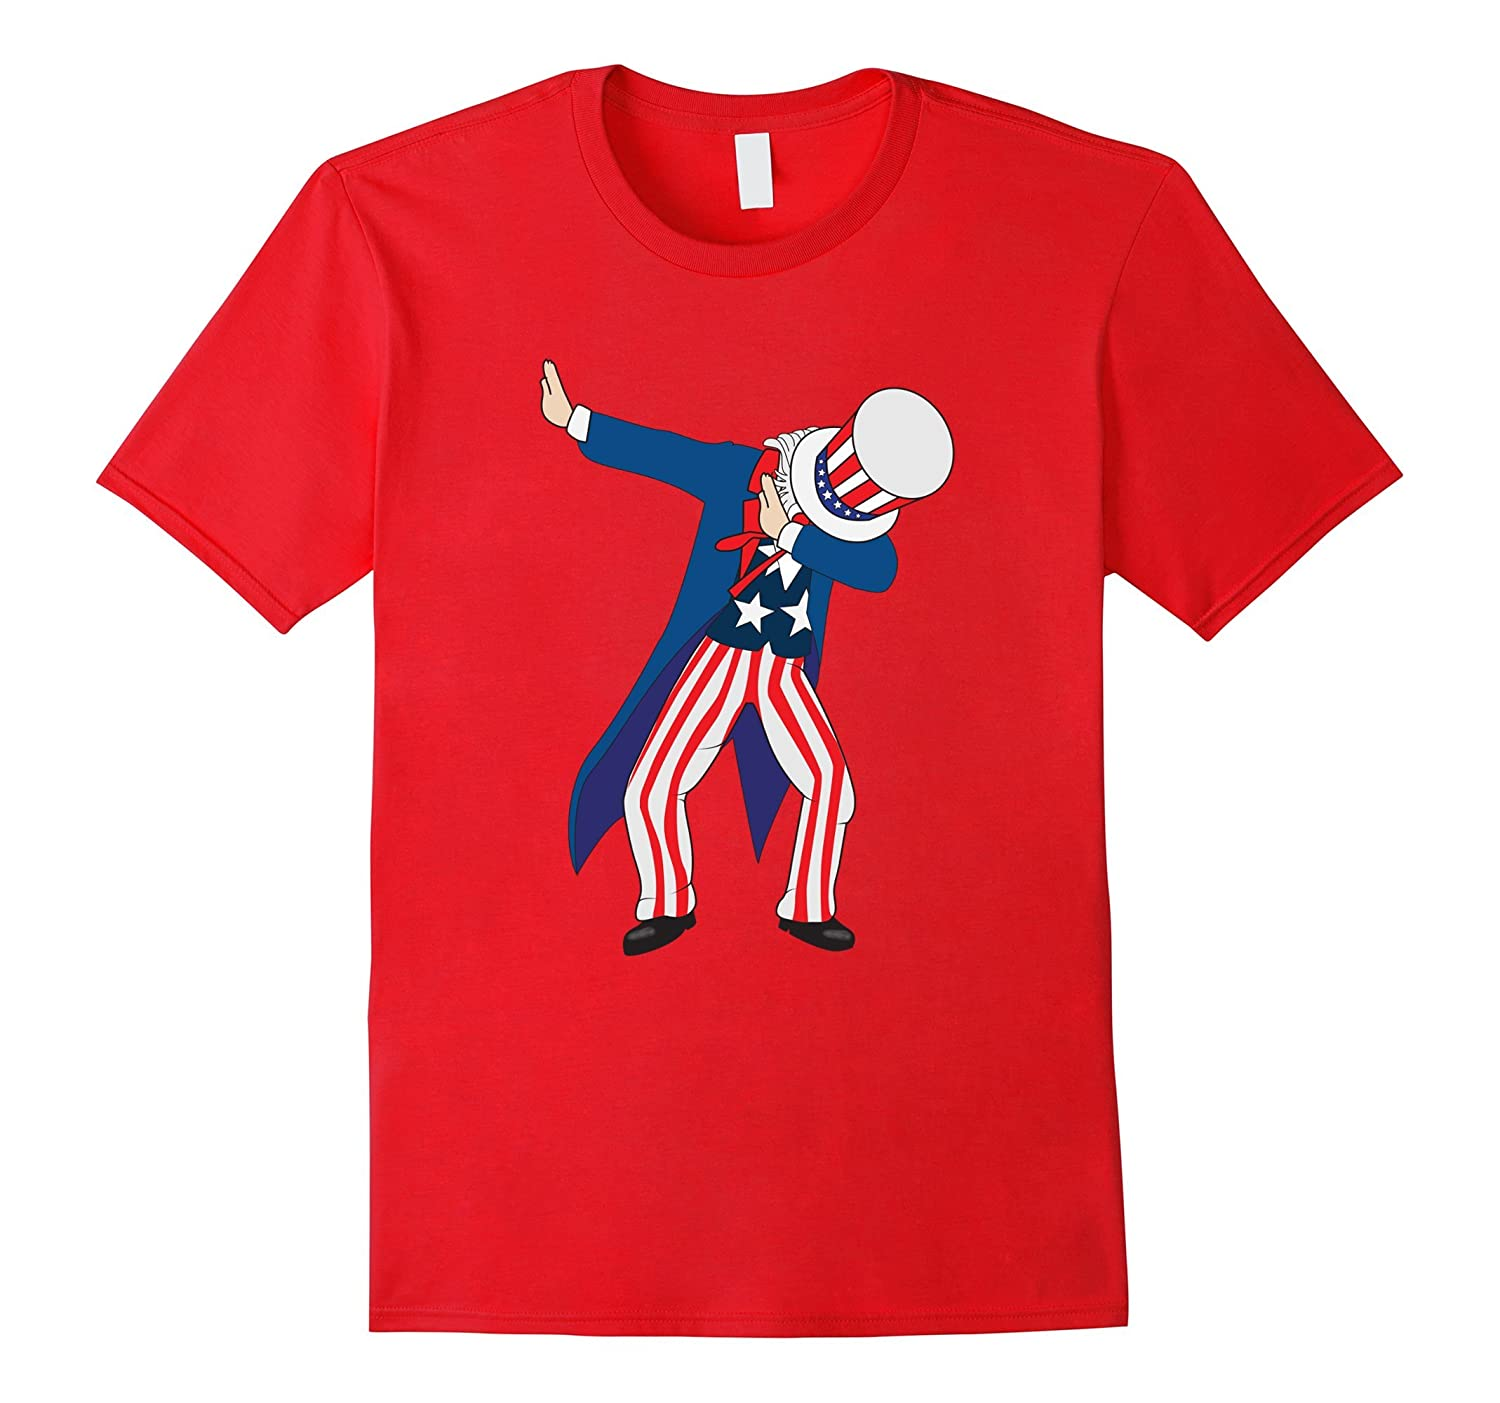 Funny Dabbing Shirt Sam Independence Day 4th of July T-shirt-PL